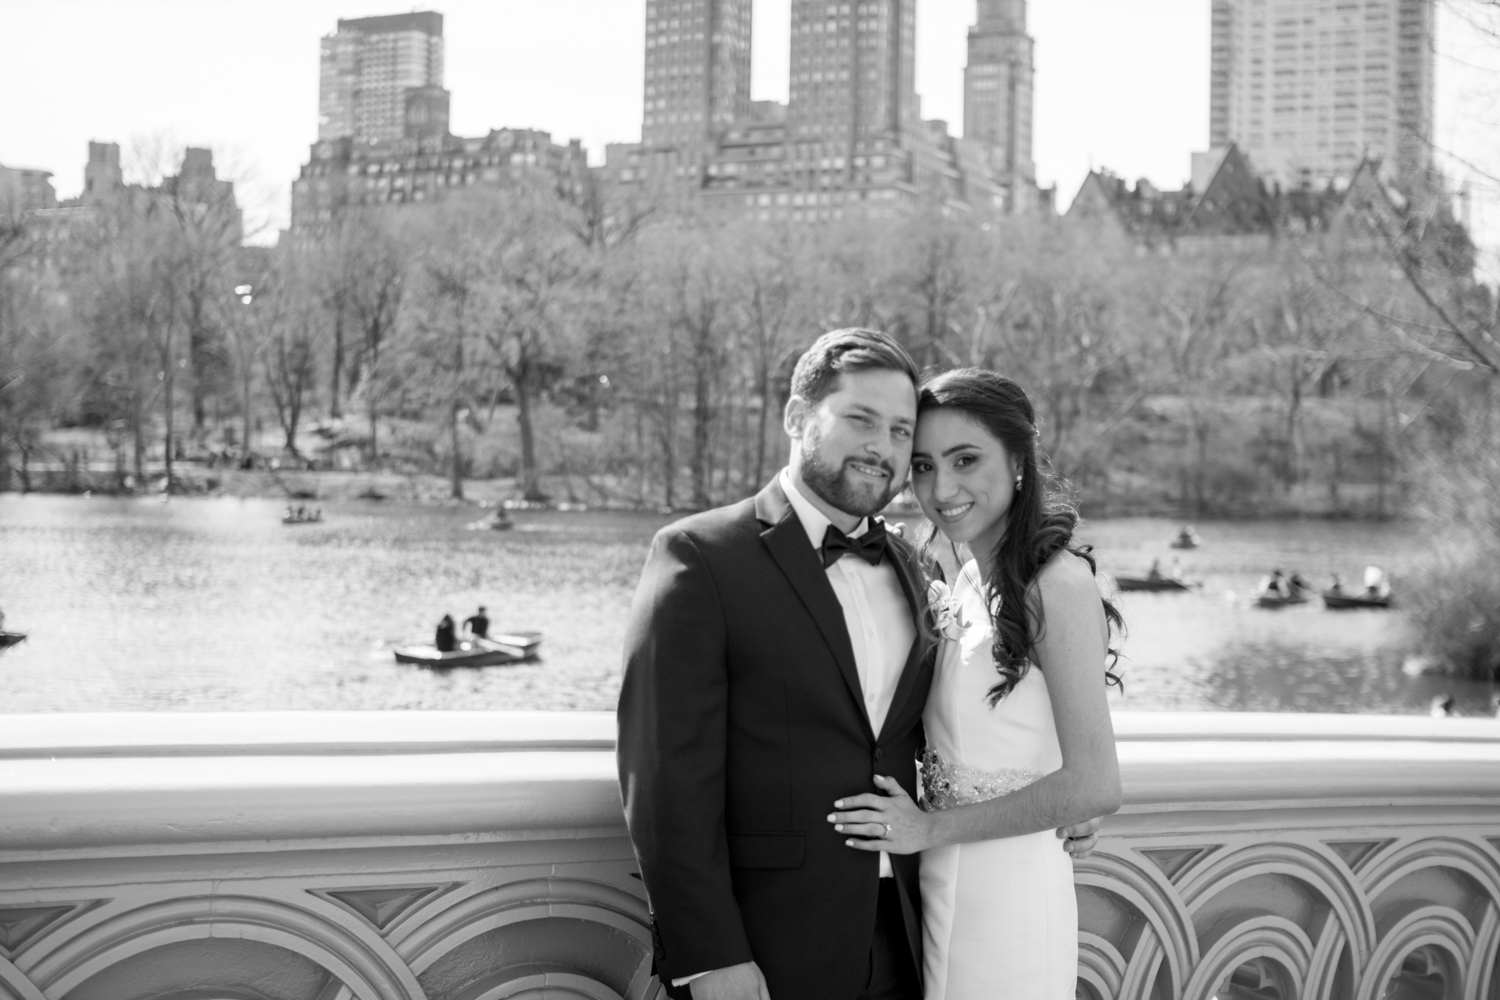 Anahi+David- Central Park Elopement- New York City- Olivia Christina Photo (91).JPG